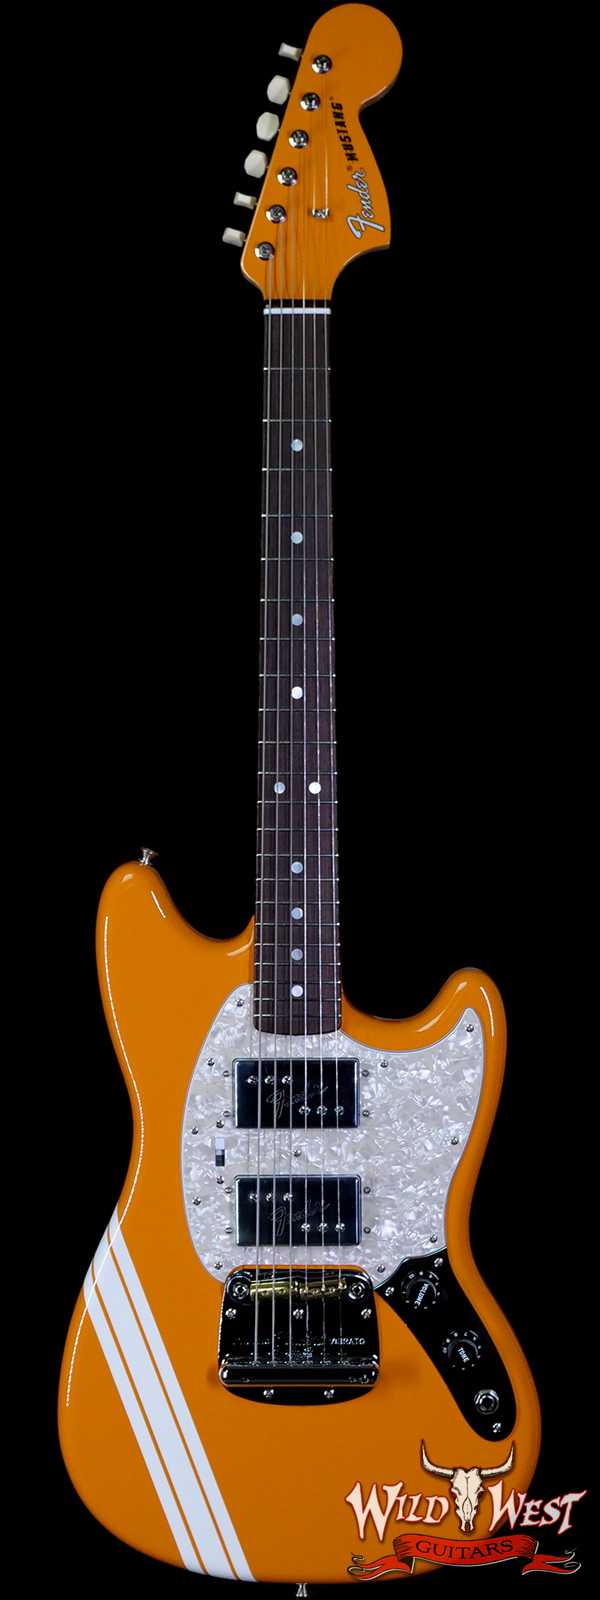 Fender Custom Shop Paul Waller Materbuilt HH Mustang NOS with Racing Stripe Capri Orange